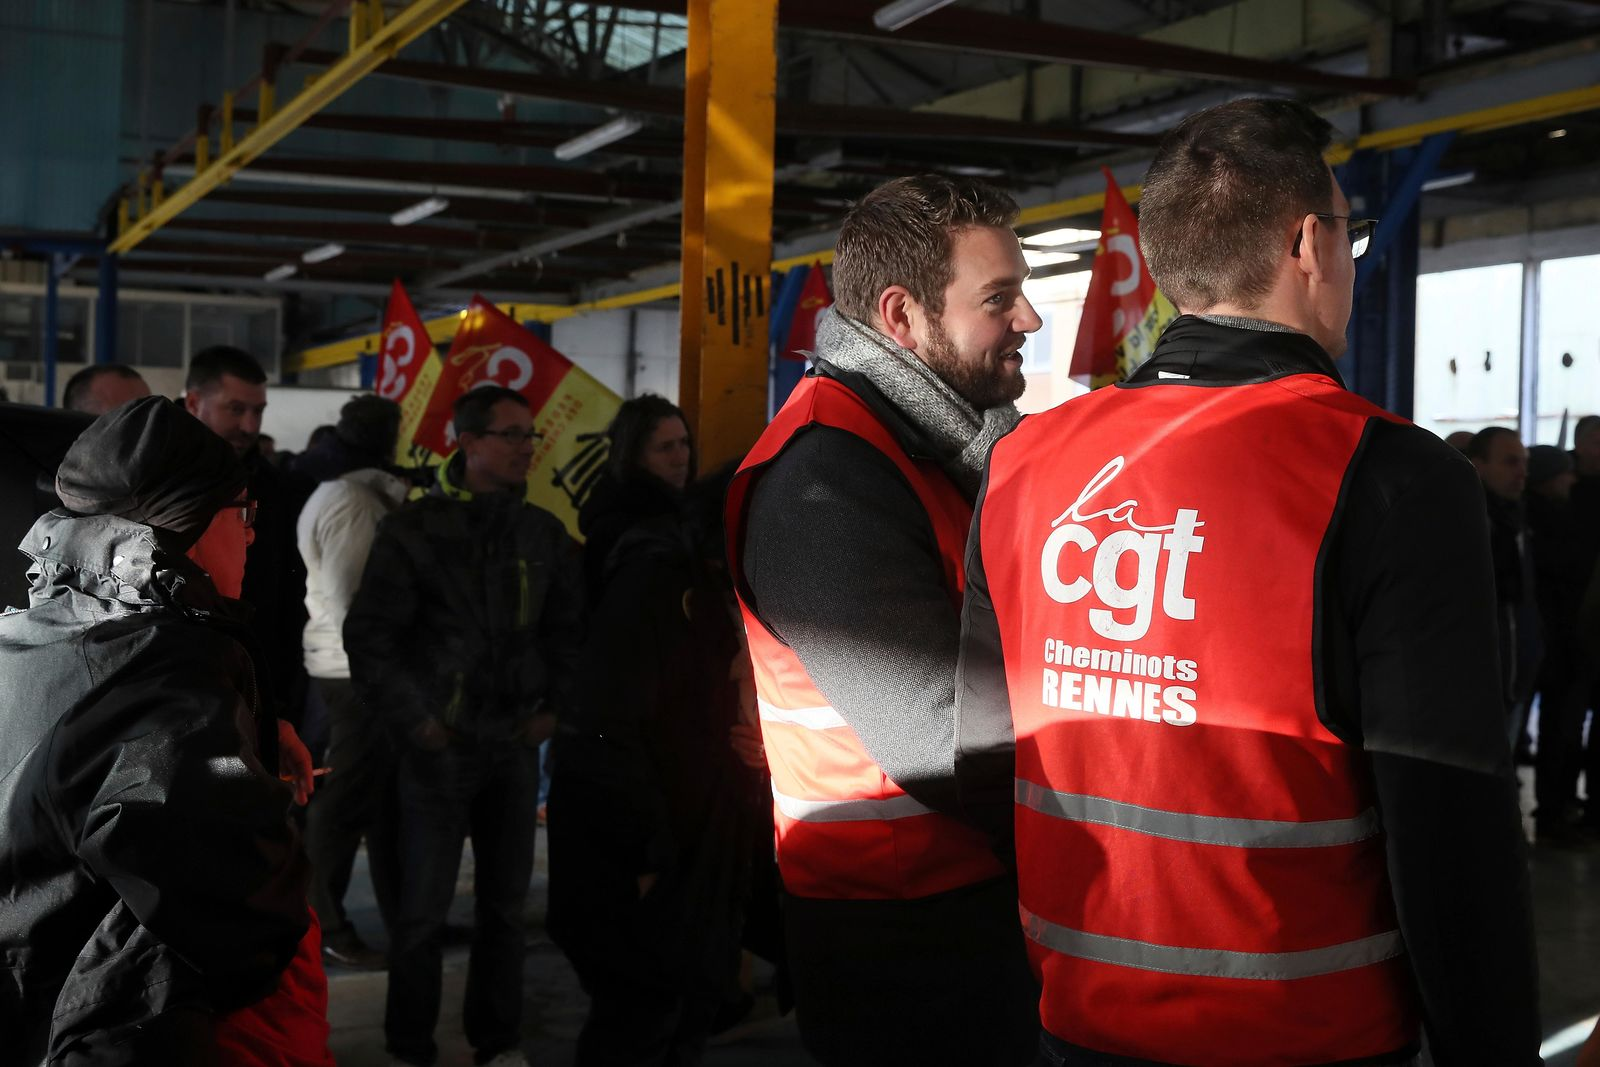 Railway workers gather during a meeting of the CGT union in Rennes, western France, Monday, Dec. 9, 2019.{ } (AP Photo/David Vincent)